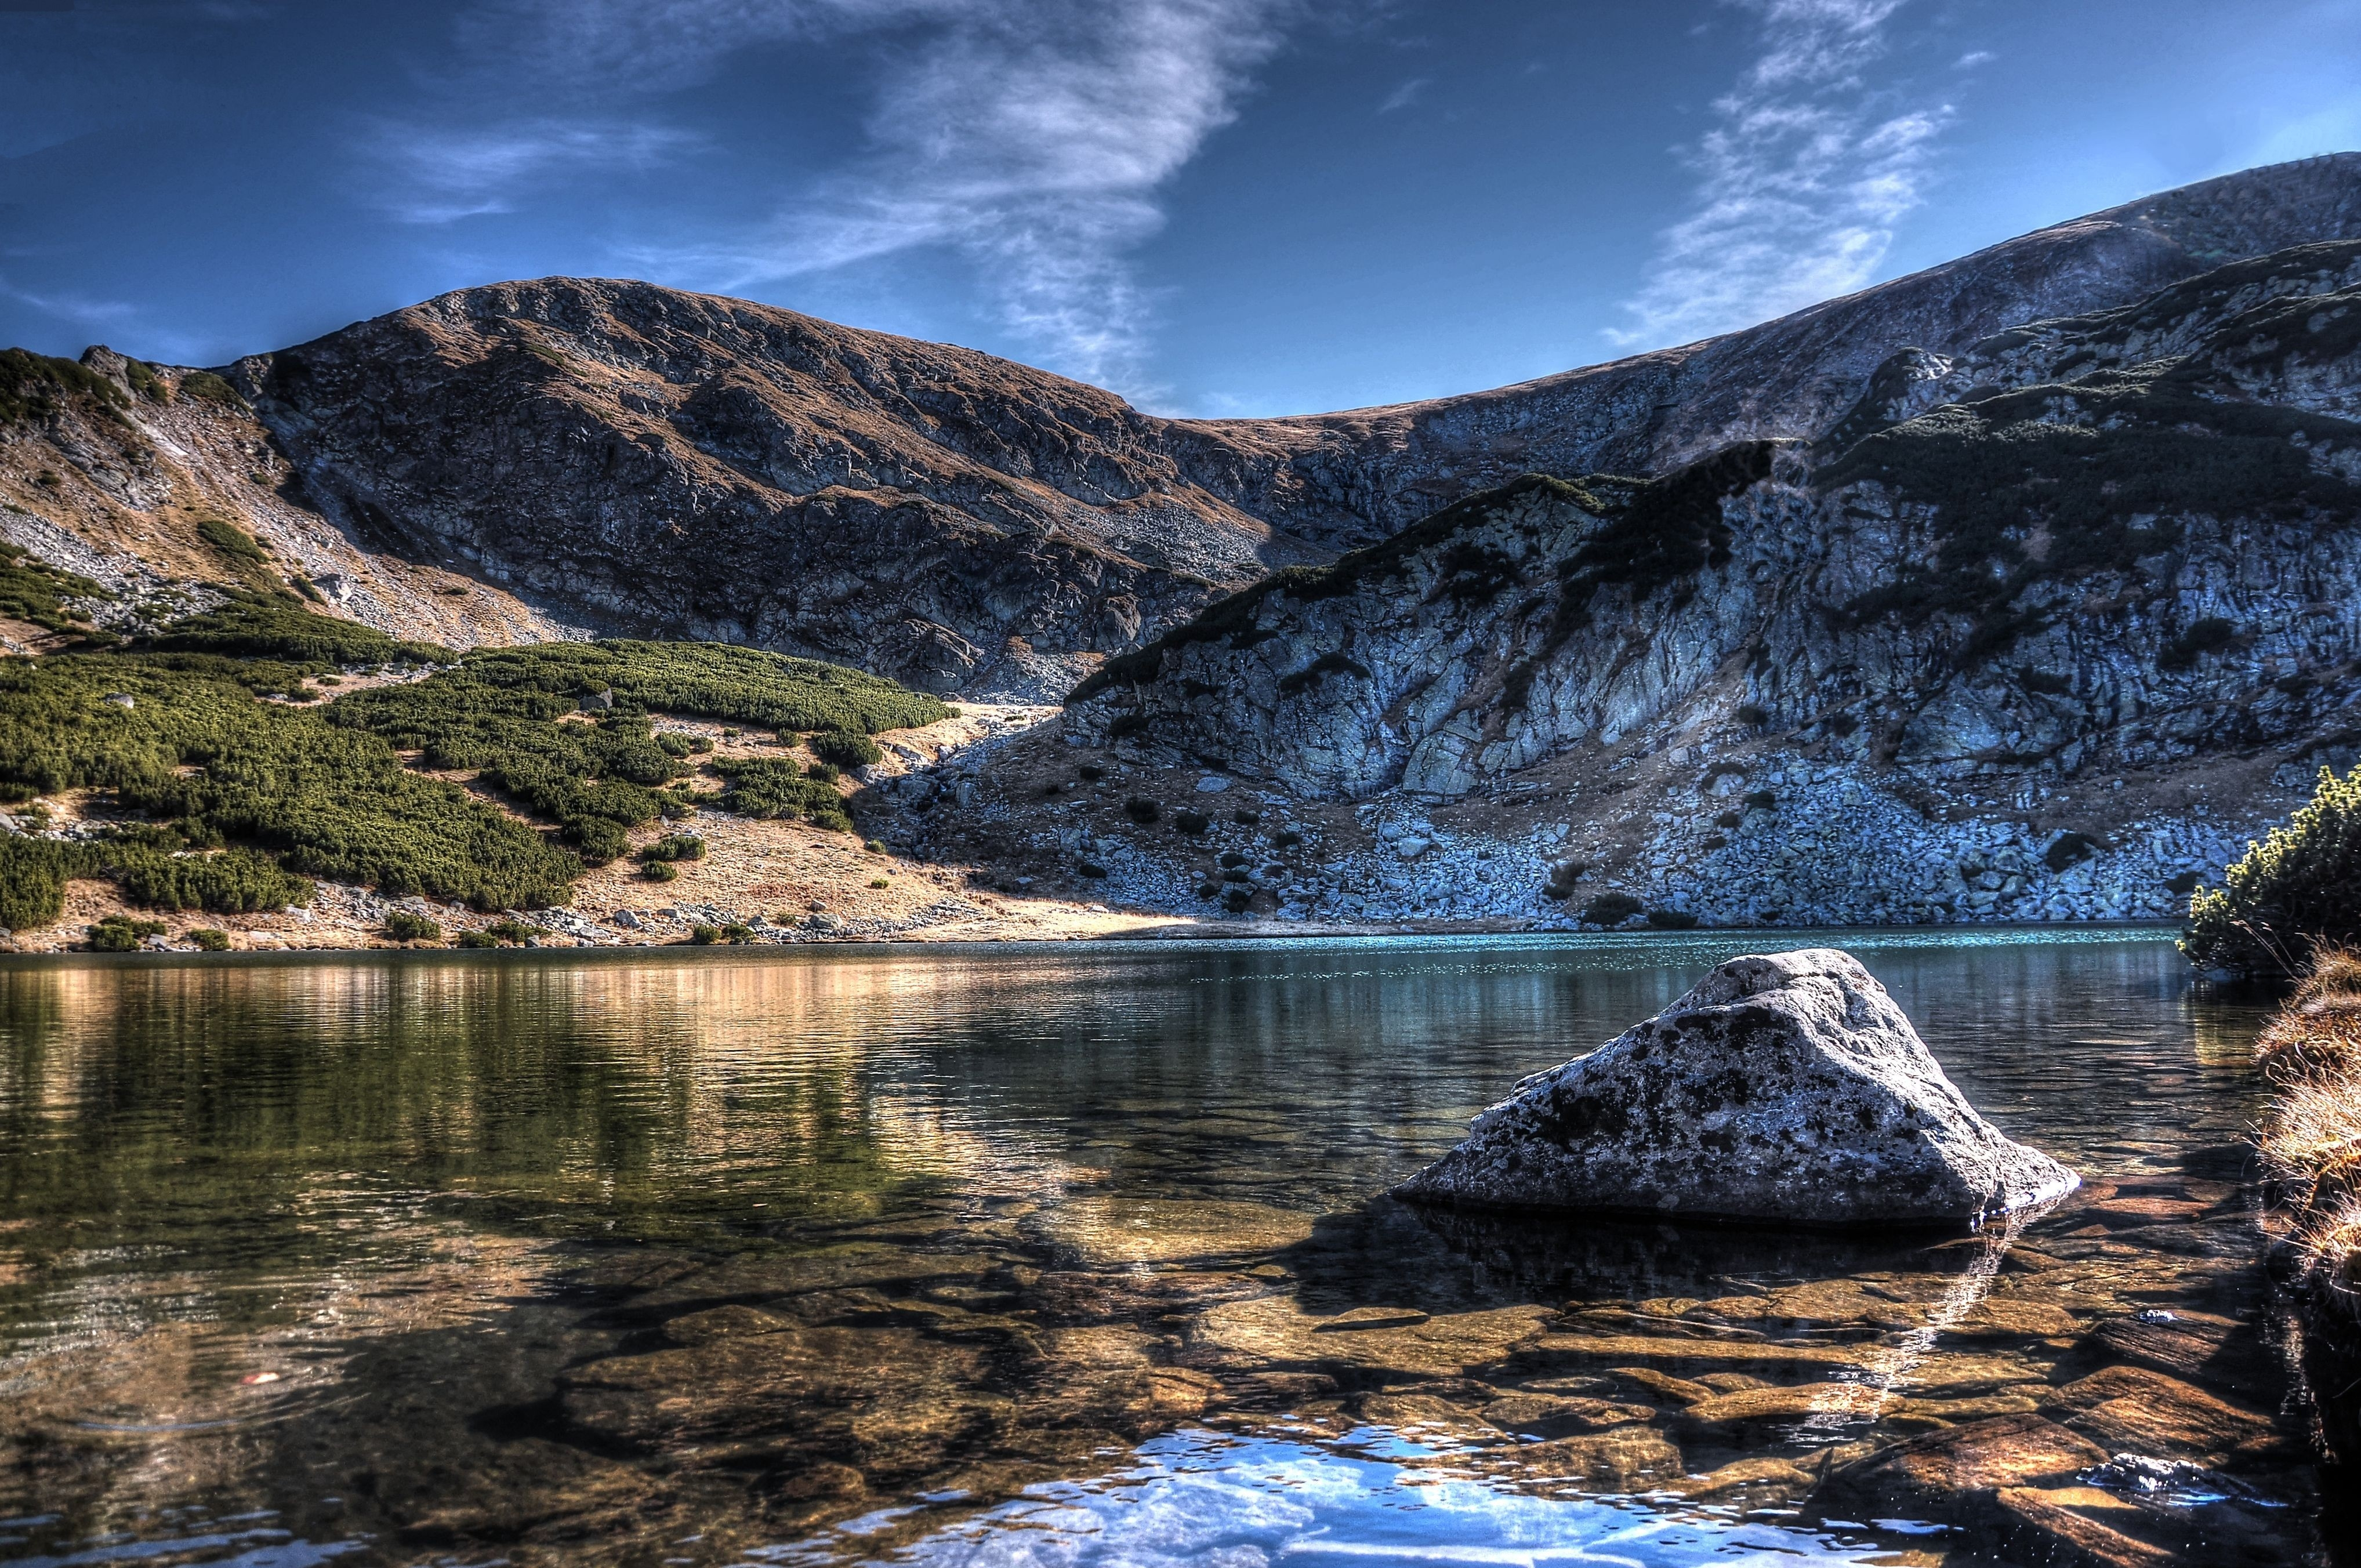 113945 download wallpaper Lake, Landscape, Nature, Sky, Mountains screensavers and pictures for free